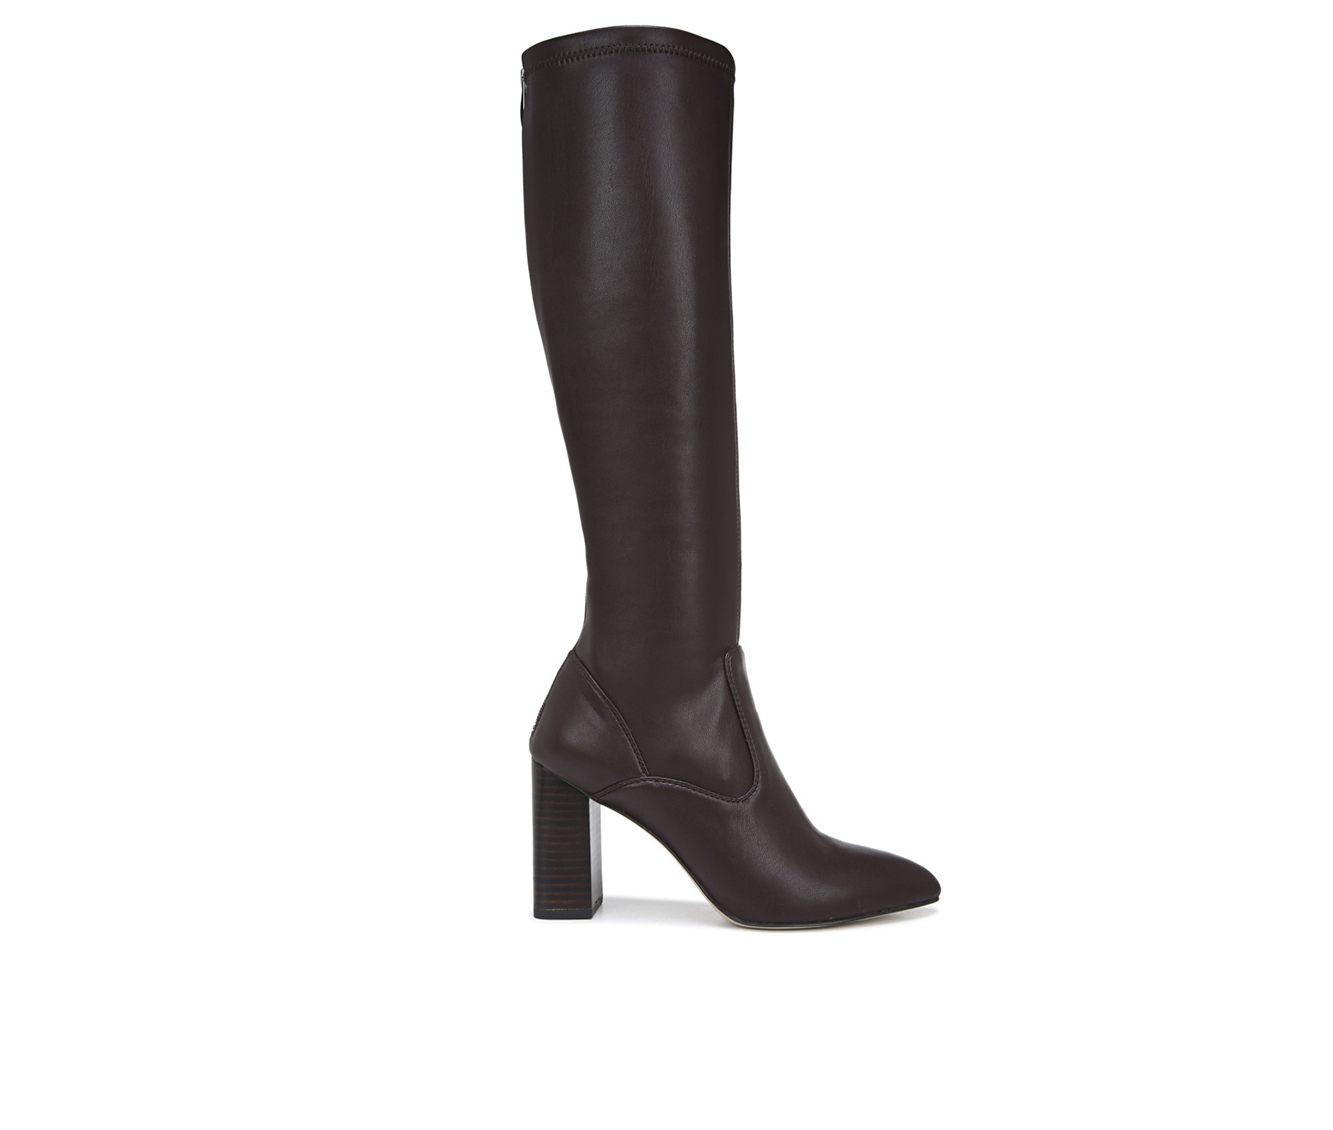 Franco Sarto Katherine Women's Boots (Brown - Faux Leather)